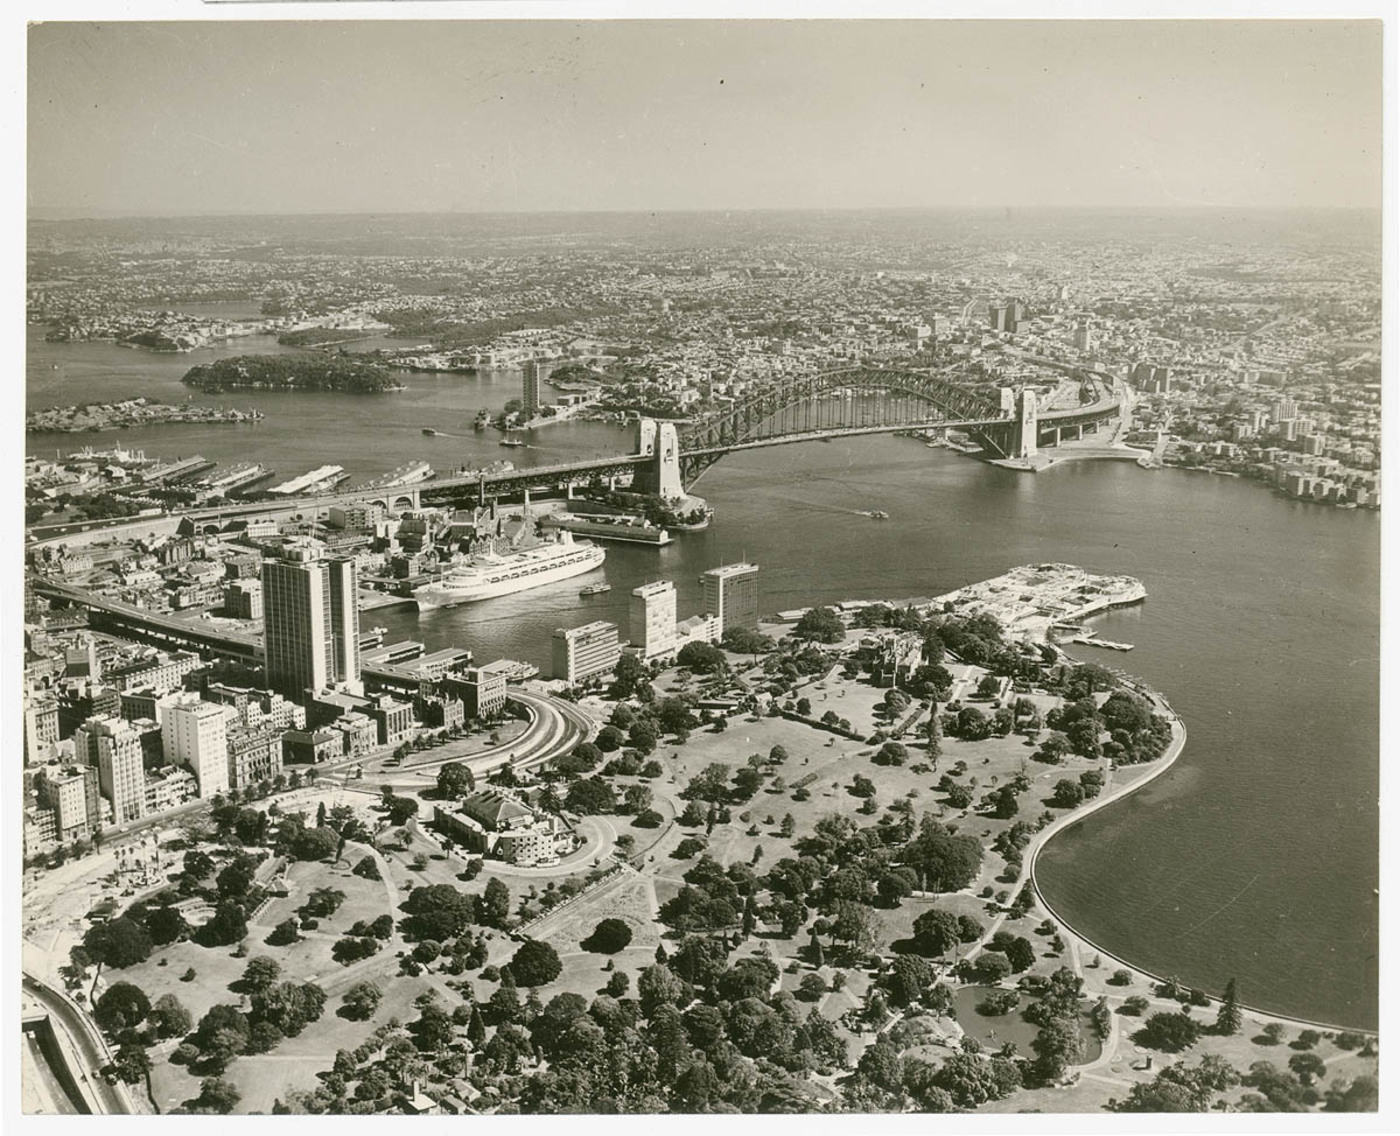 [AMP Building, Botanic Gardens, Harbour Bridge and Circular Quay with liner Canberra], July 1963, by Ern McQuillan